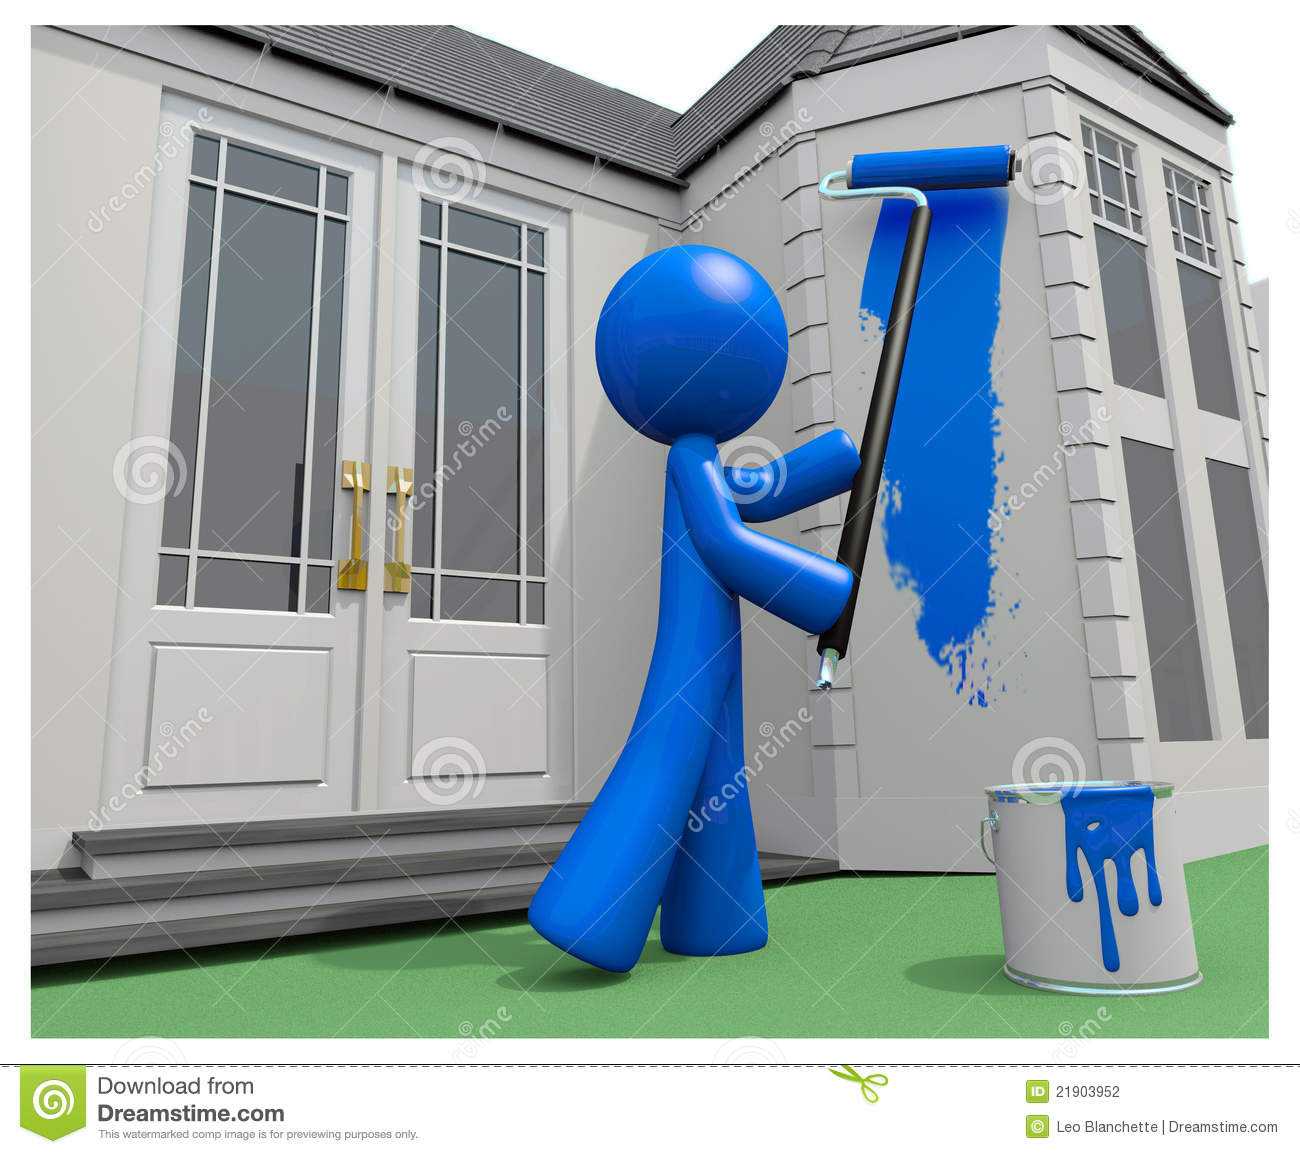 Professional Exterior Painting Services: Blue Man Painting His House With Paint Roller Stock